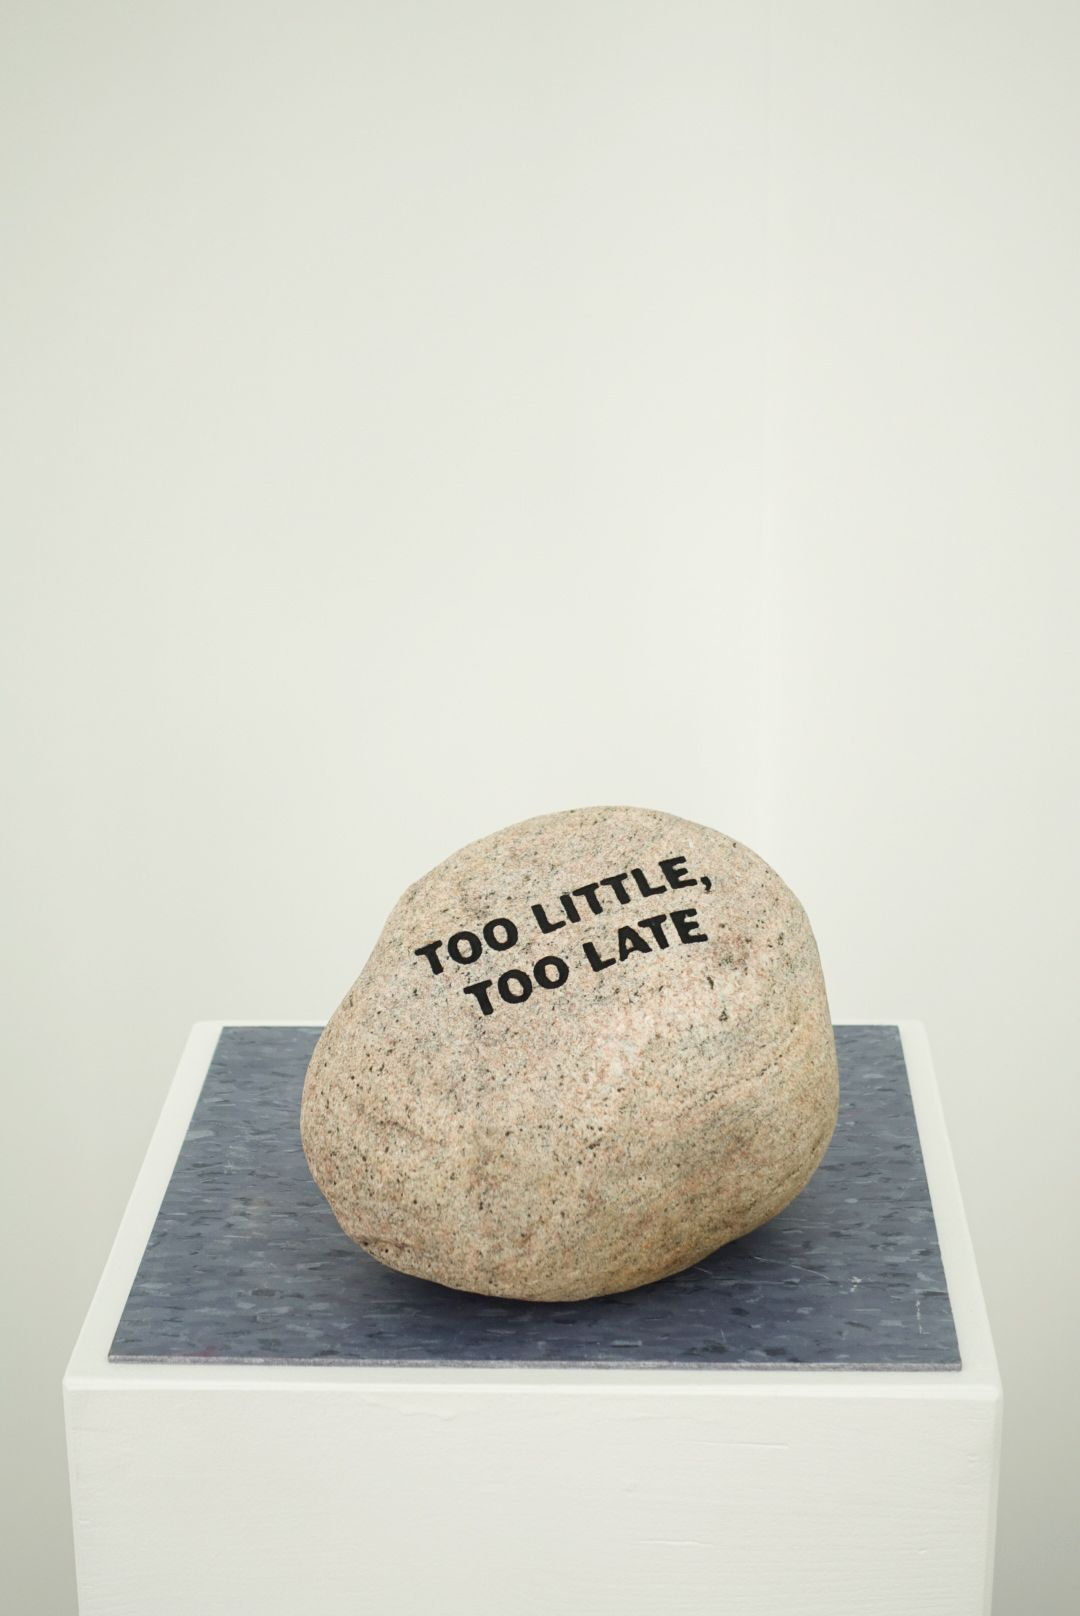 MICHAEL VICKERS | MONUMENT V(LATE)| ENGRAVED AND PAINTED STONE BOULDER | 6X 8 X9 INCHES| 2017